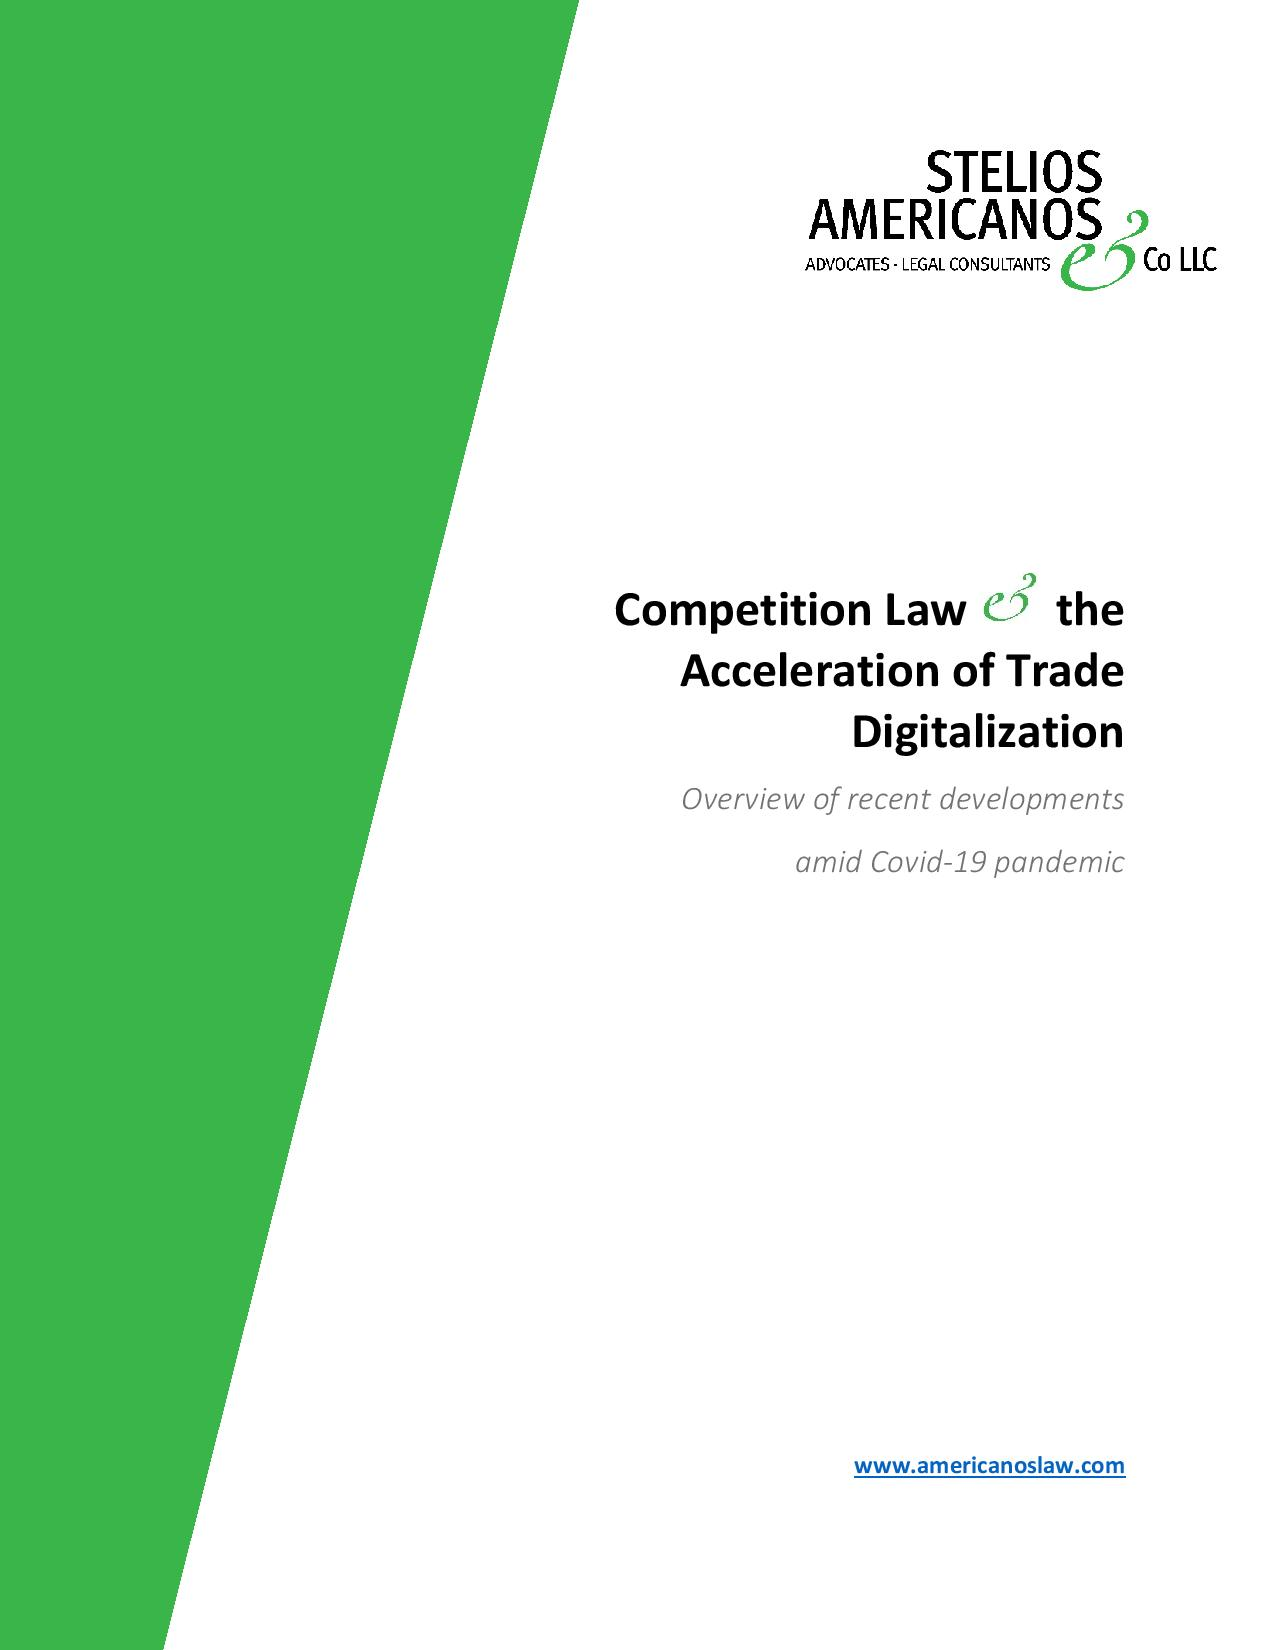 Stelios Americanos & Co LLC: Competition Law the Acceleration of Trade Digitalization